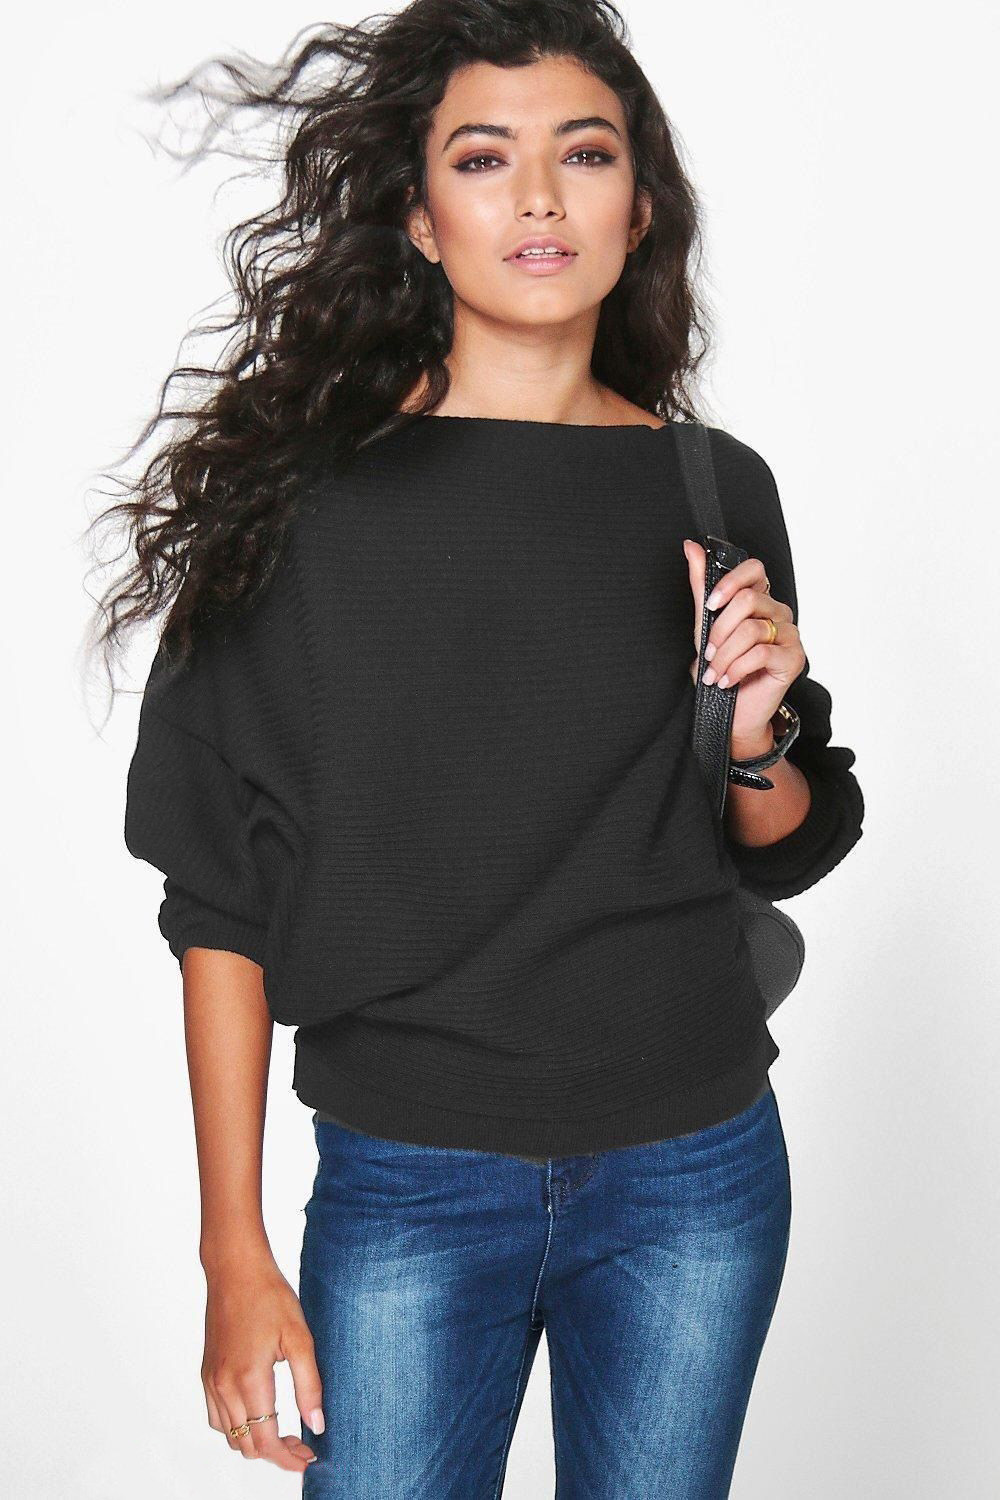 New fashion o-neck winter sweater women lantern sleeve loose solid color pullover female soft warm autumn casual jumper